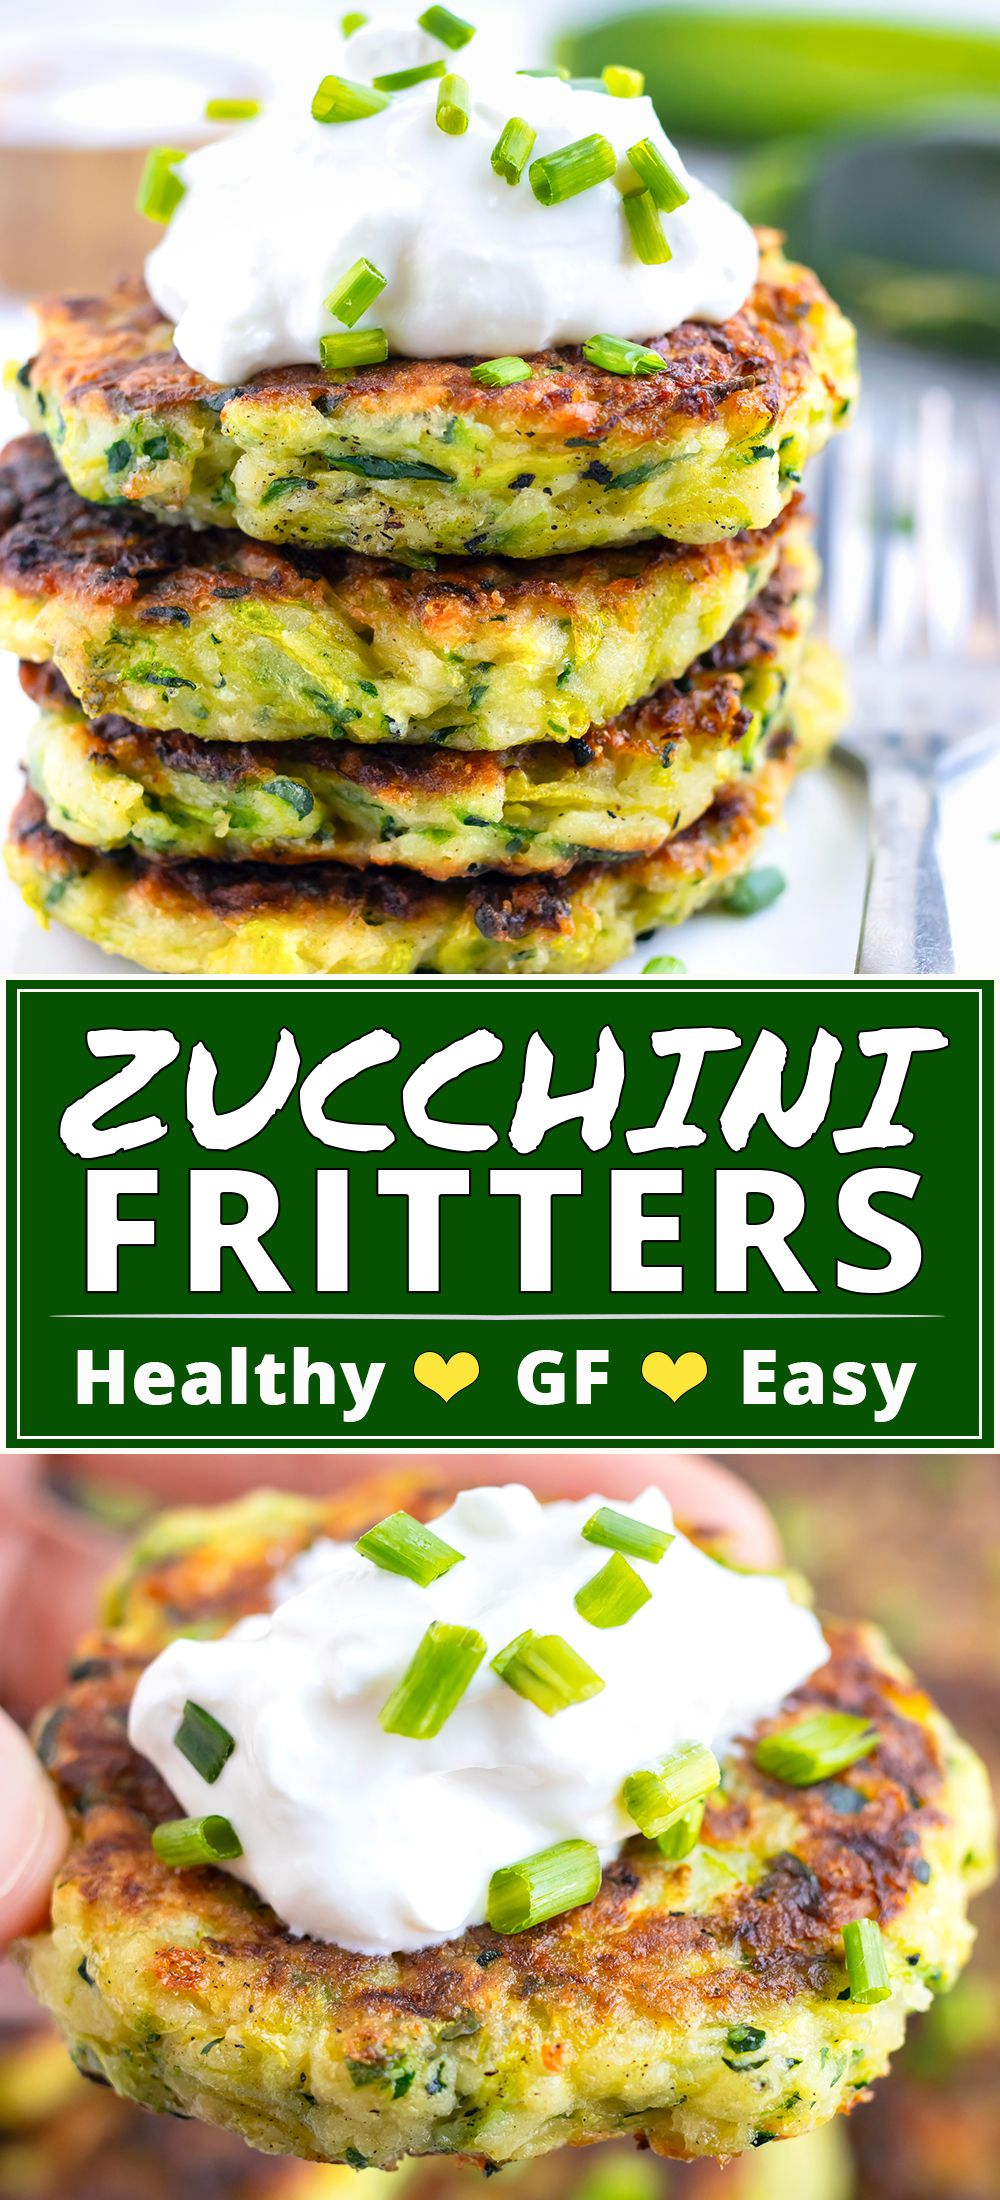 Zucchini Fritters Recipe In 2020 With Images Gluten Free